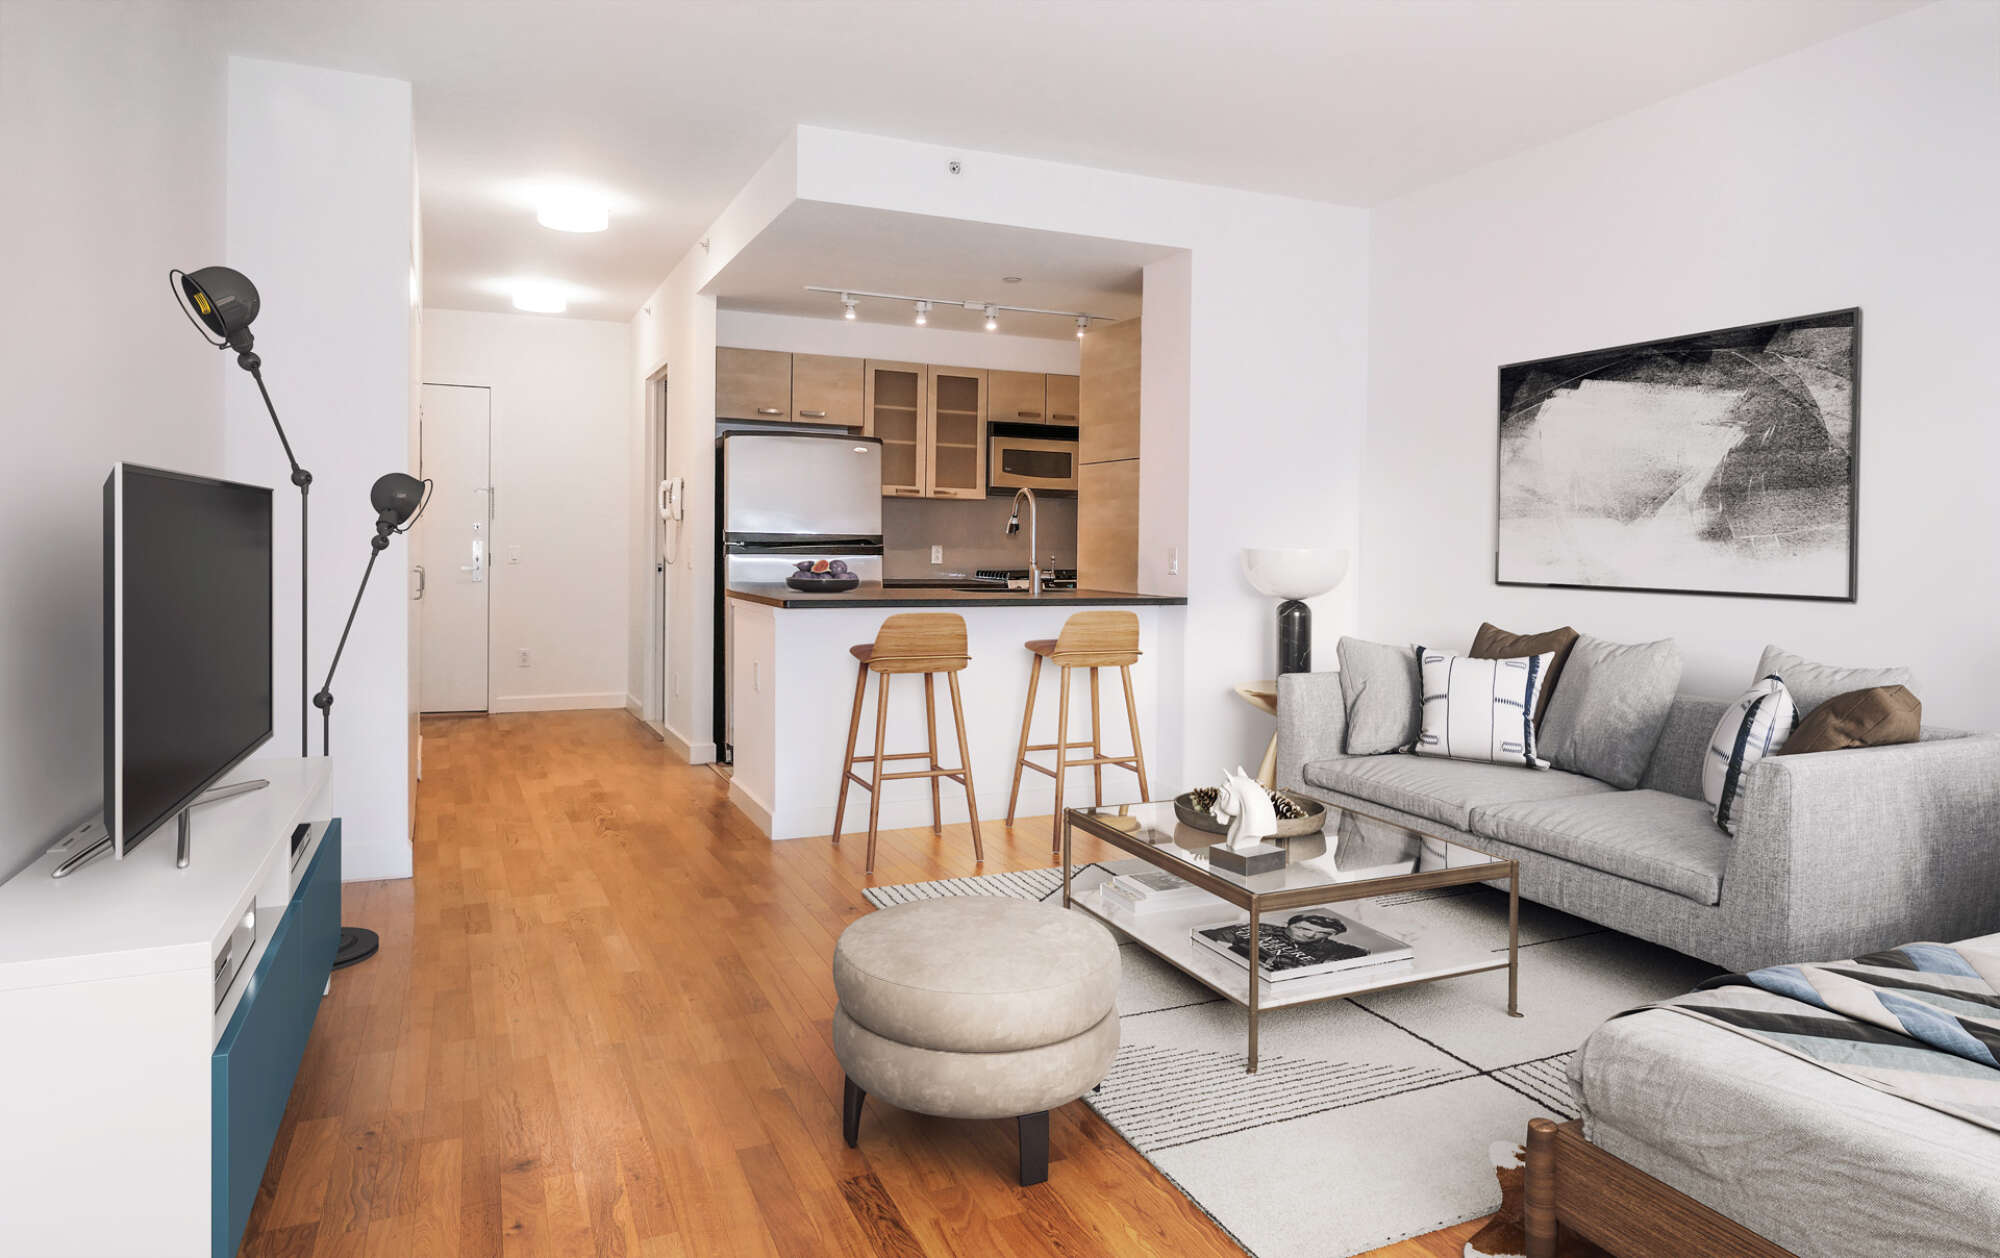 88 Leonard staged model apartment unit interior